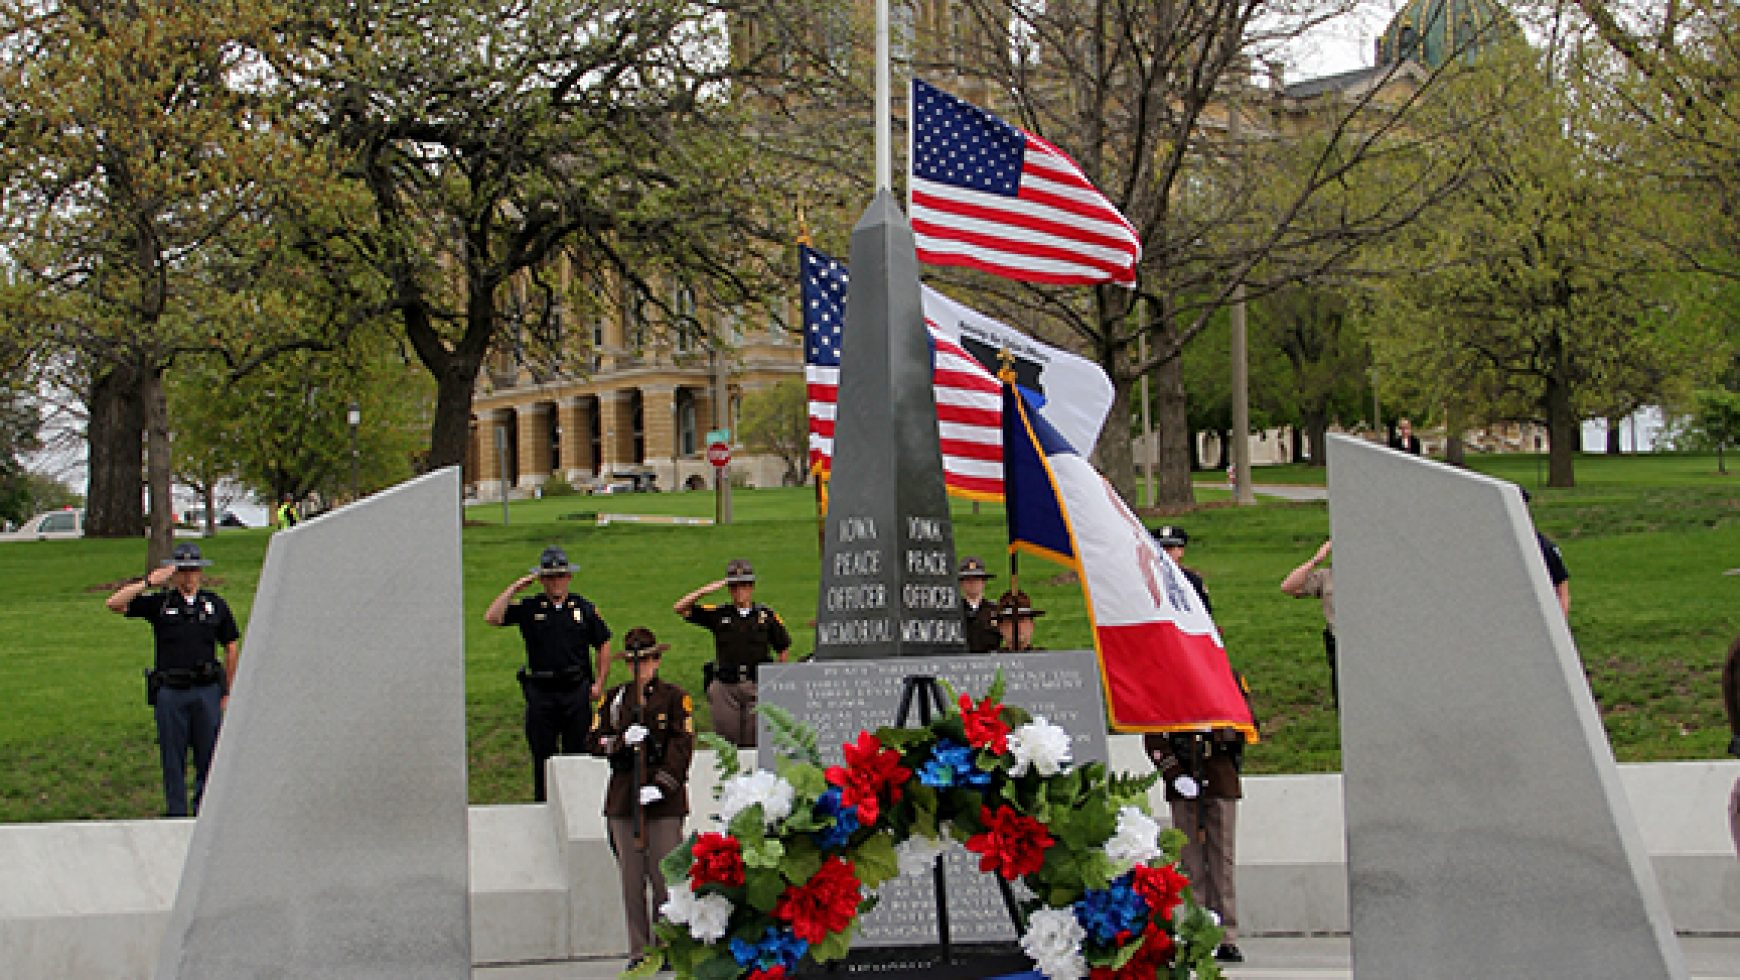 Iowa Peace Officer Memorial Service